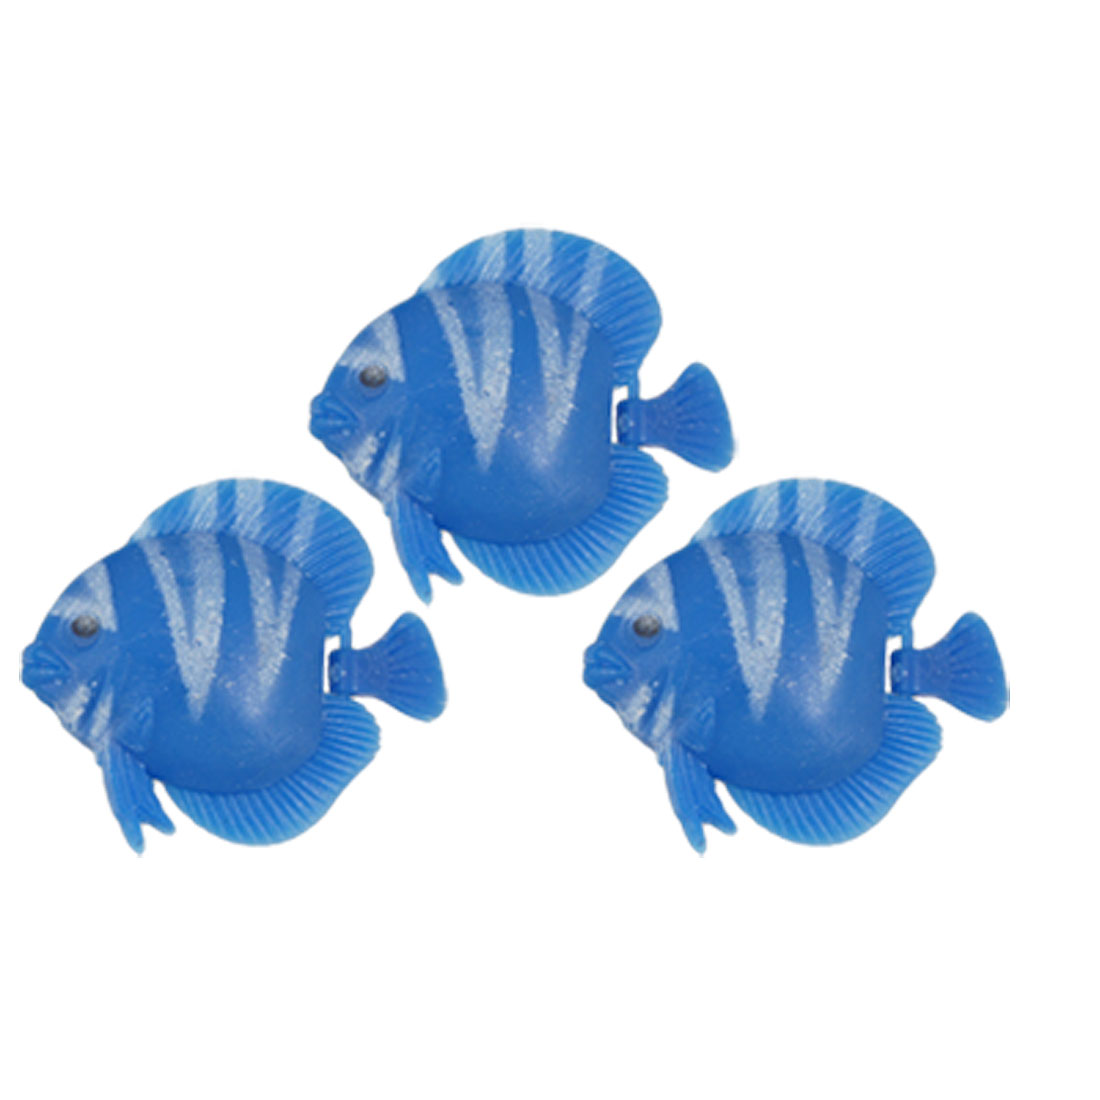 3 Pcs Blue White Mini Plastic Floating Fish Aquarium Ornament